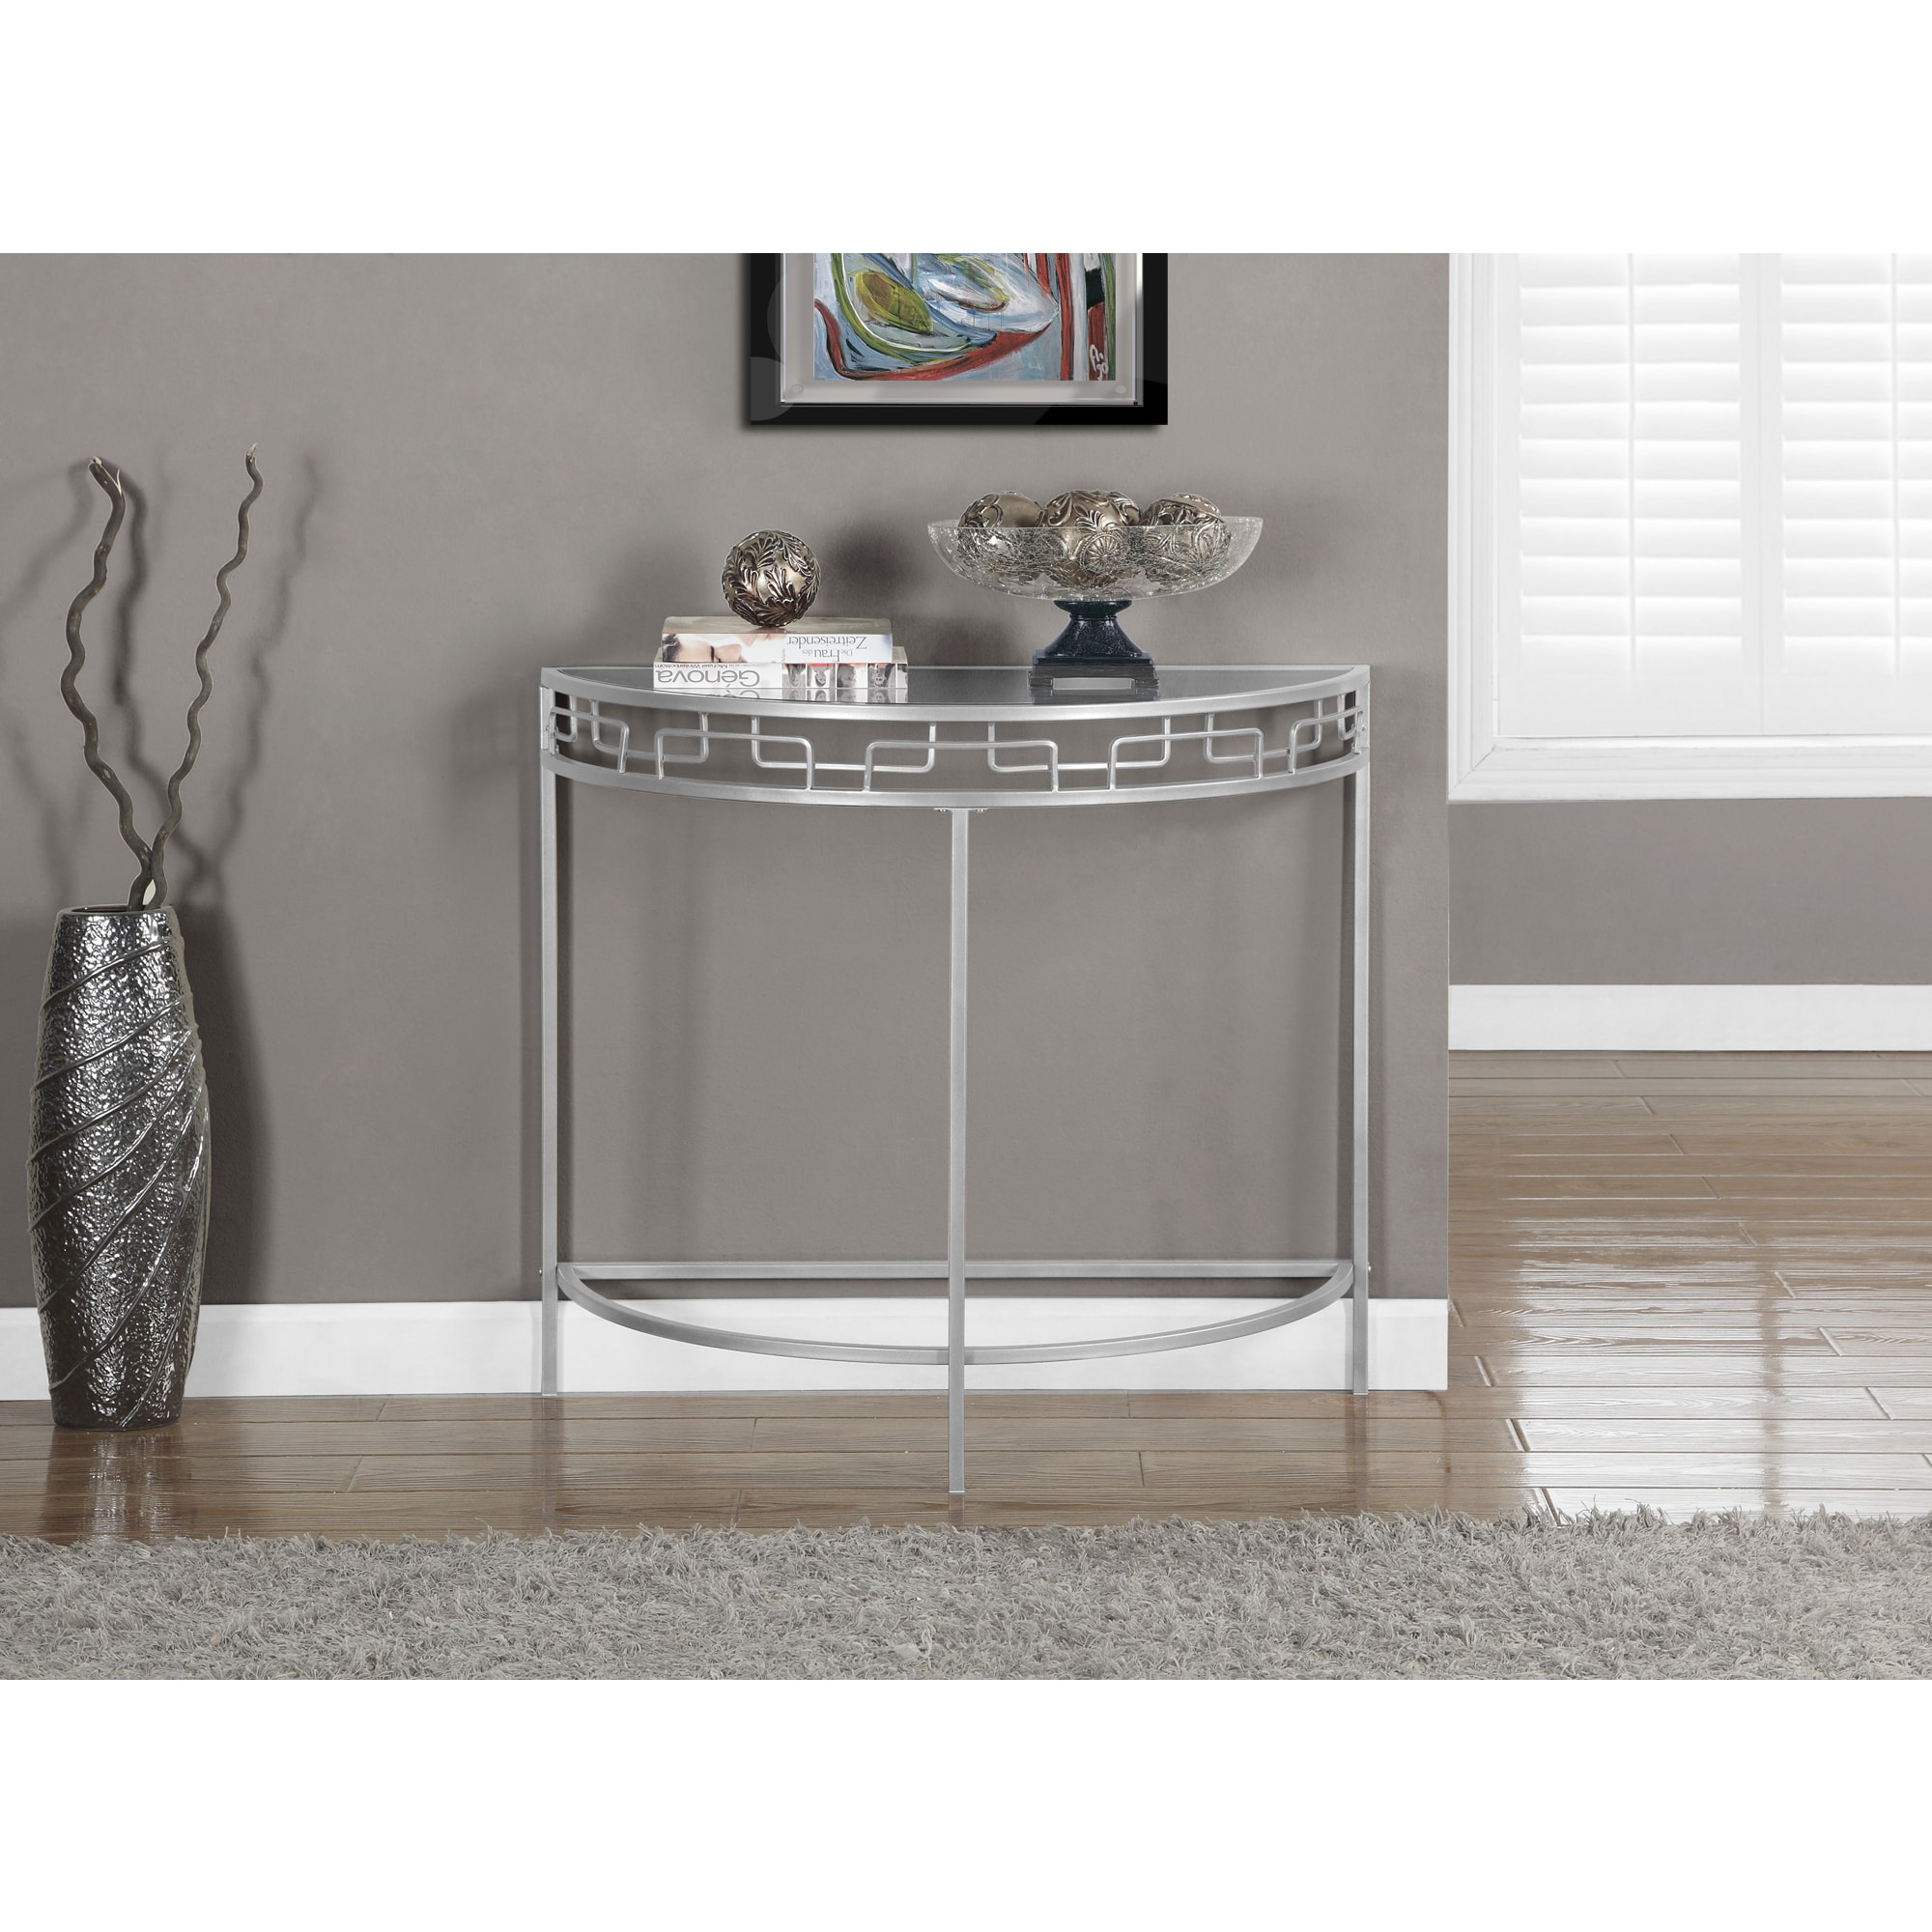 36 Inch Accent Table - Silver-Metal-36-inch-Hall-Console-Accent-Table-6d96f427-f8b1-498a-be8f-283dfefb5a37_Best 36 Inch Accent Table - Silver-Metal-36-inch-Hall-Console-Accent-Table-6d96f427-f8b1-498a-be8f-283dfefb5a37  HD_65363.jpg